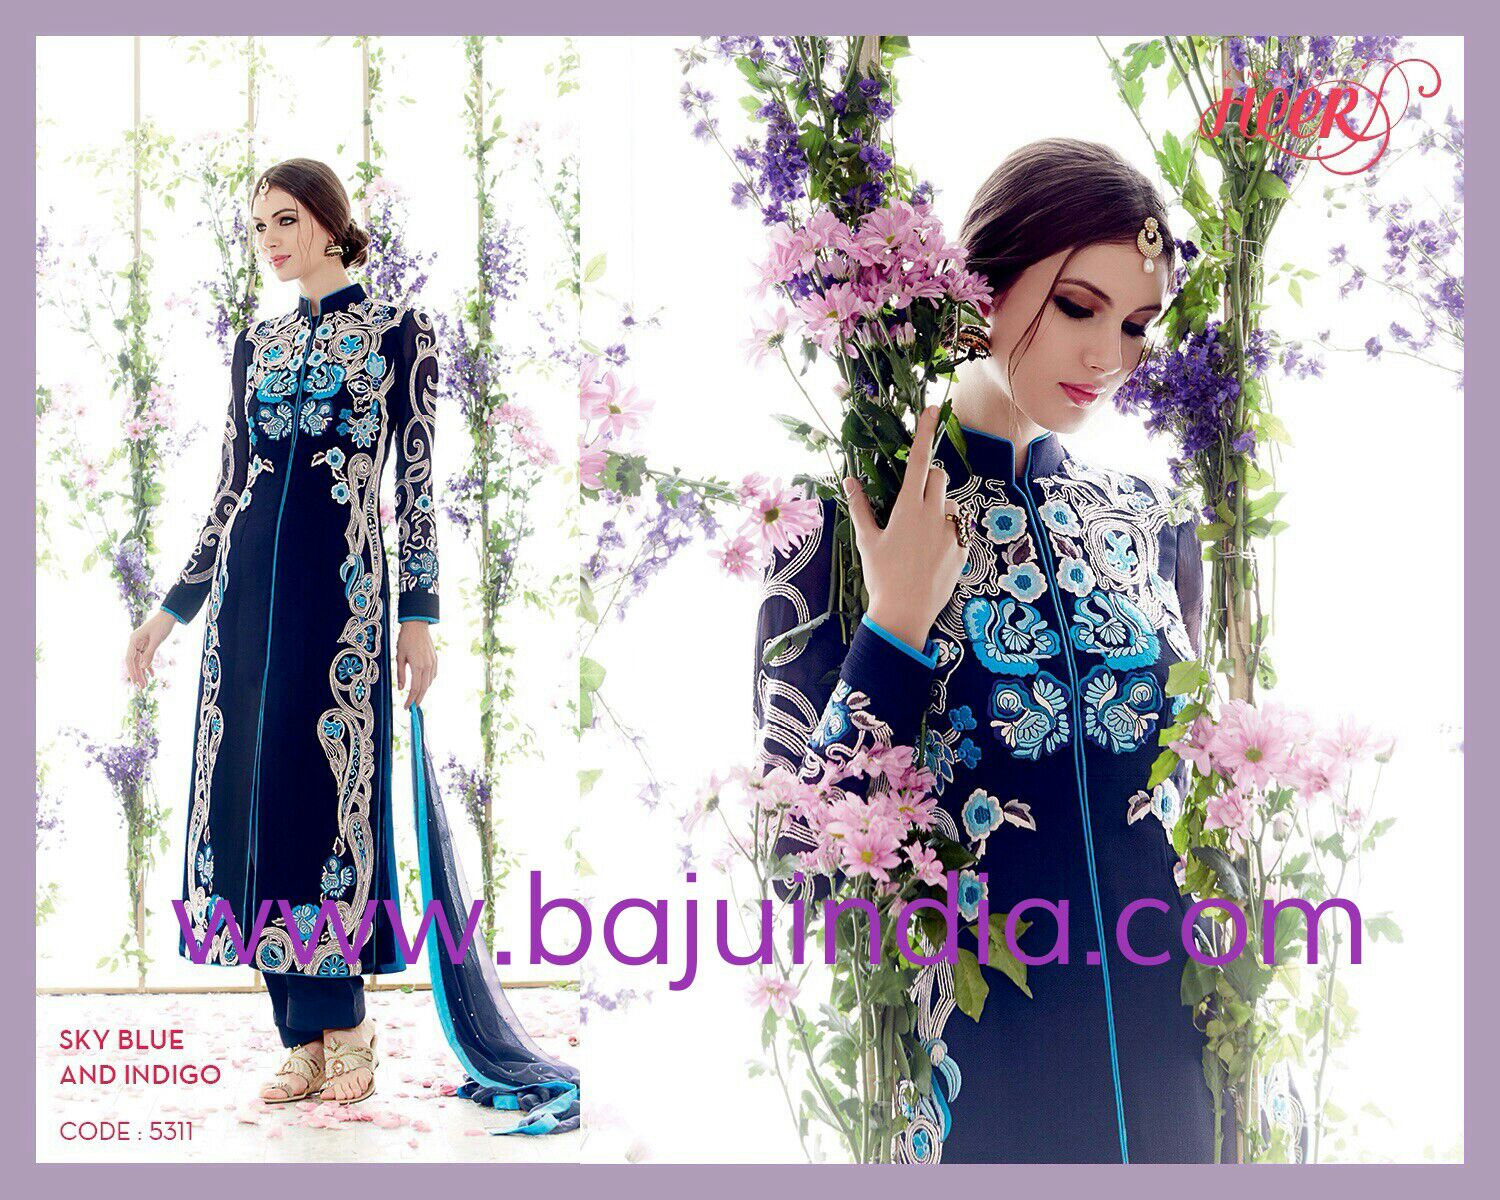 Baju India Muslim - Baju India Modern - Baju Khas India - Baju Adat India - Sari India Terbaru - Sari India Muslim - Baju Kerajaan India - Baju Salwaar India - HEER-5311